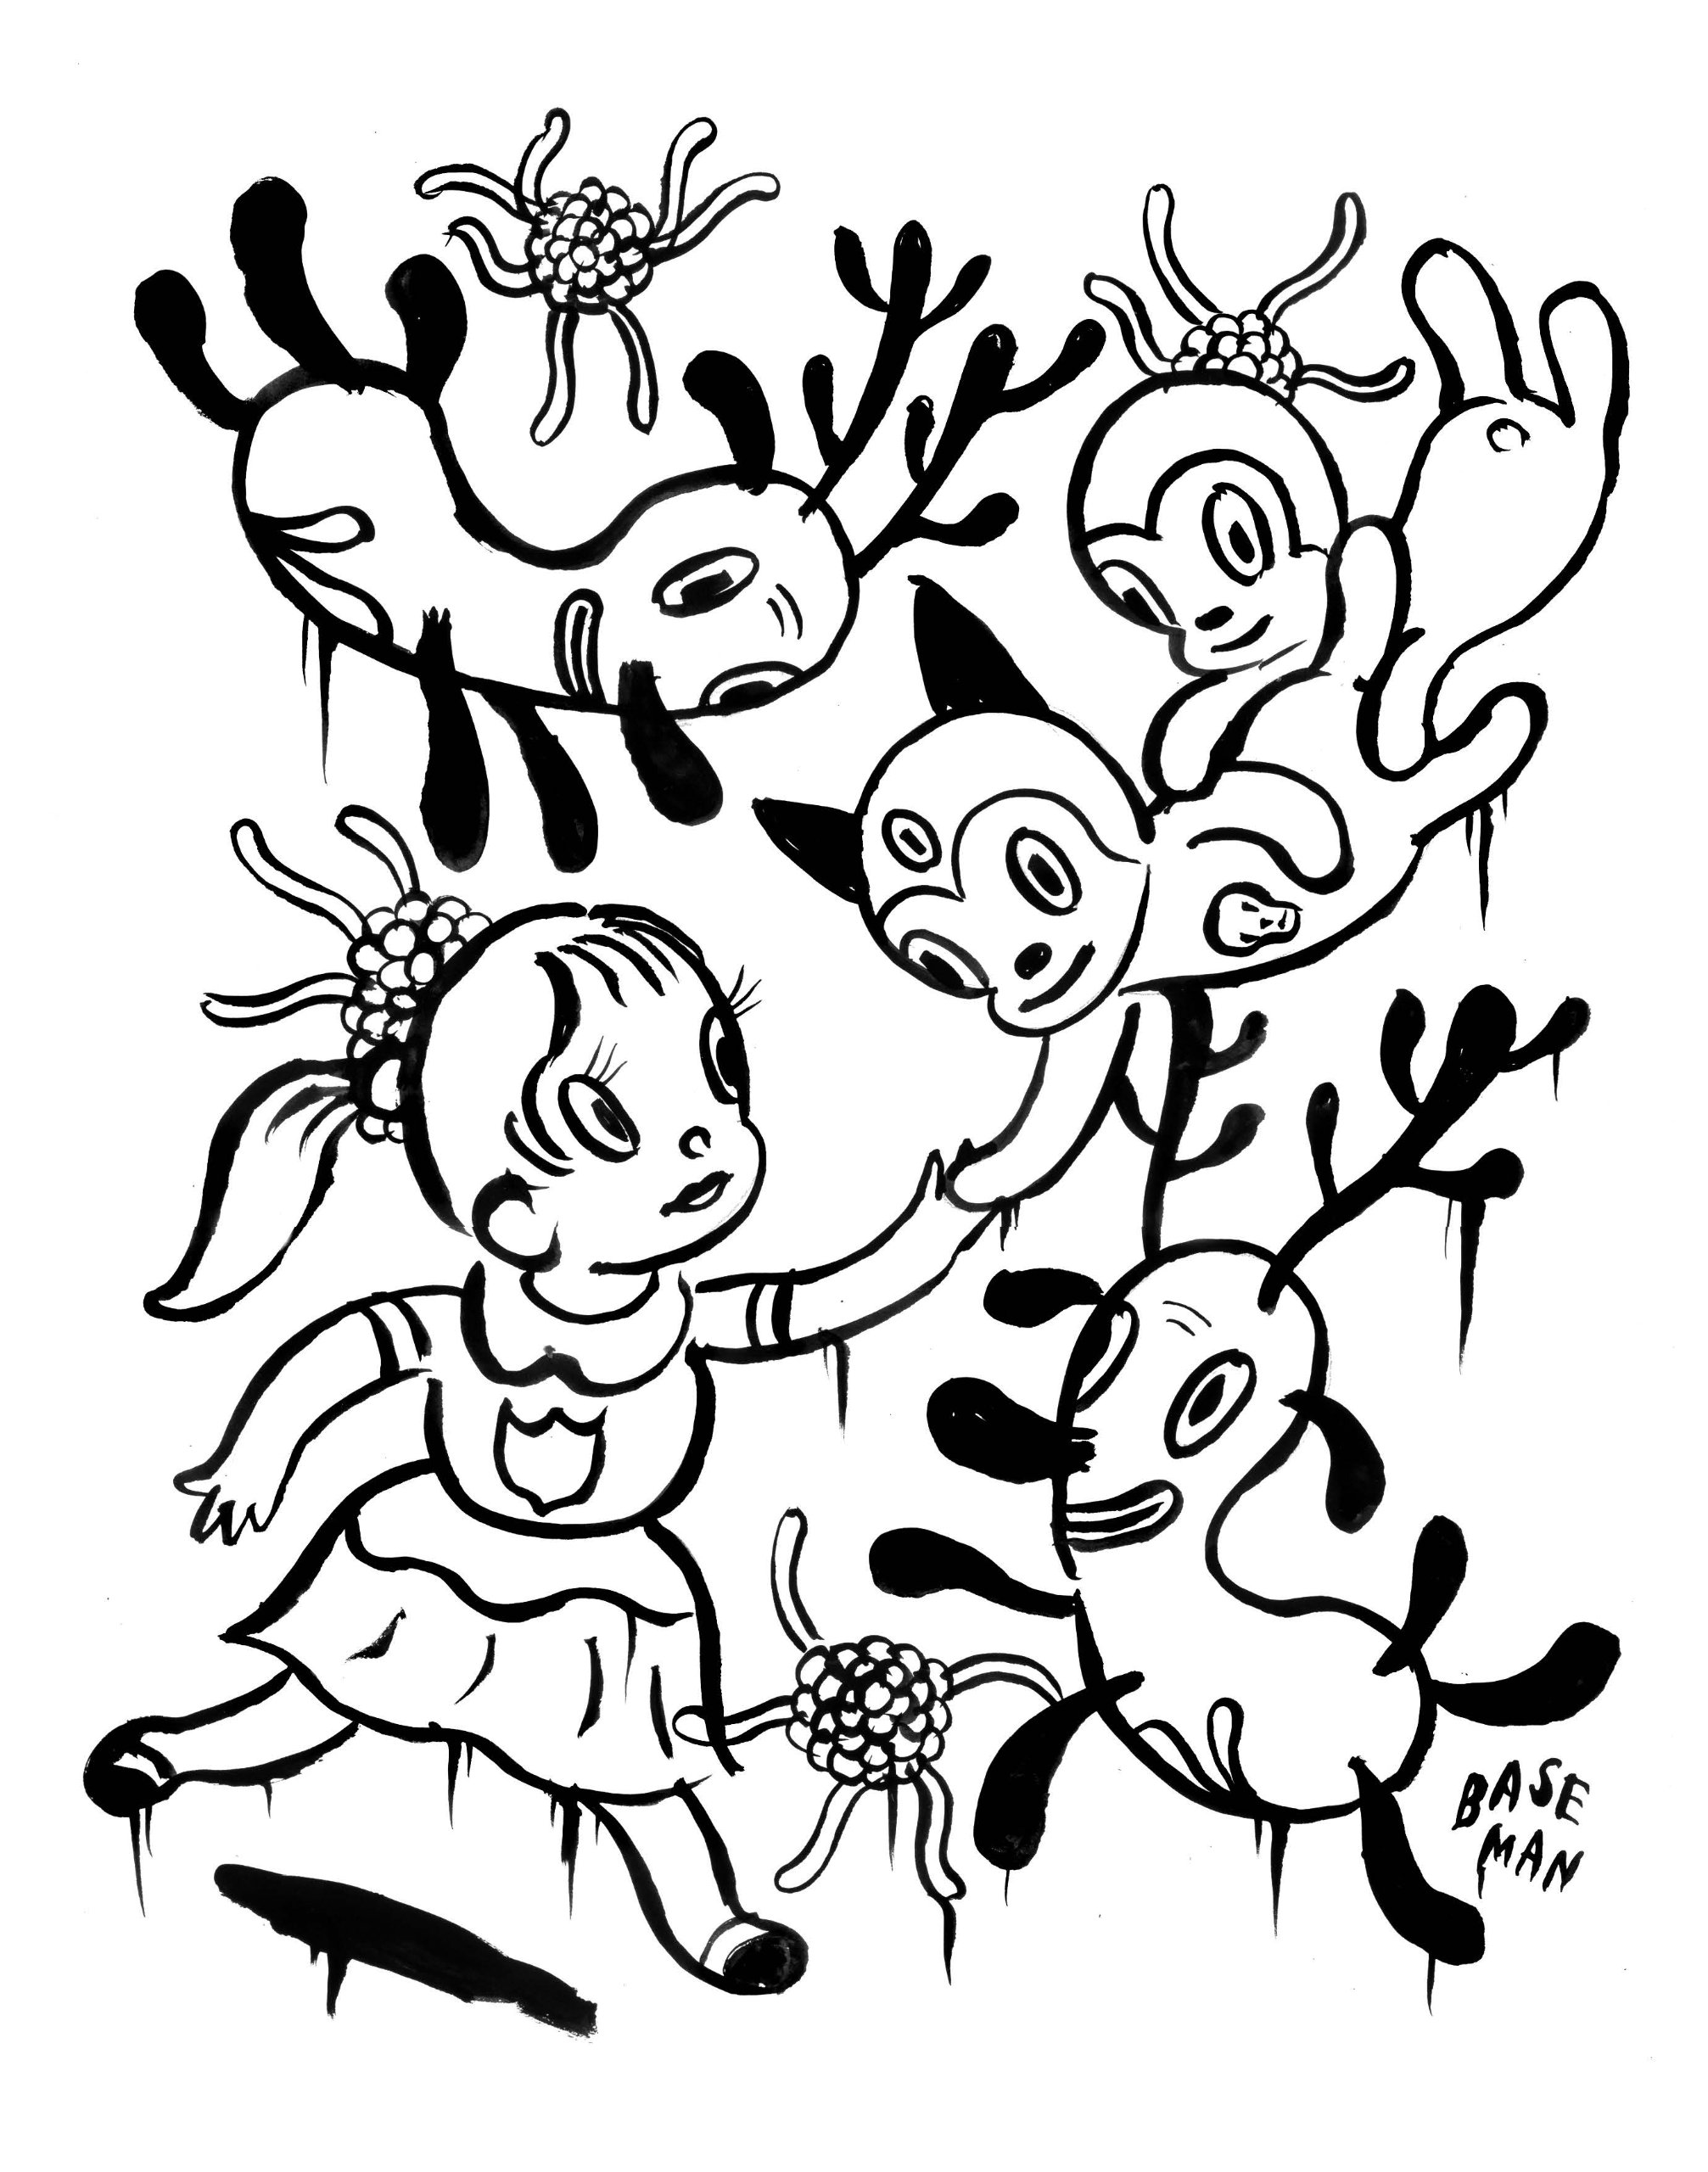 2013x2560 Outside The Lines An Artists' Coloring Book For Giant